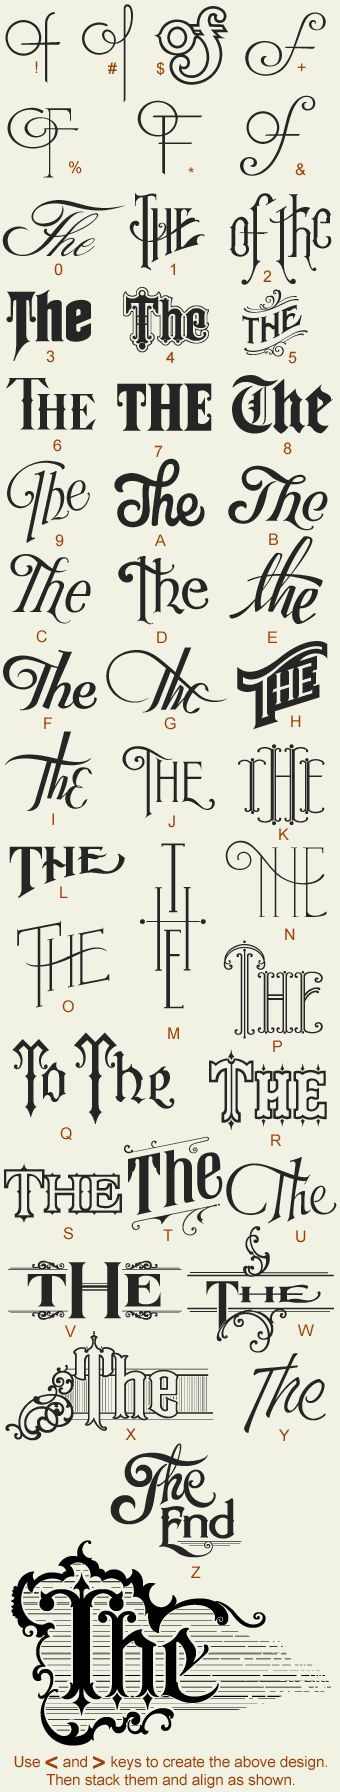 Letterhead Fonts / LHF Noel\u0027s Thes  Ands Great example of how to - letterhead example